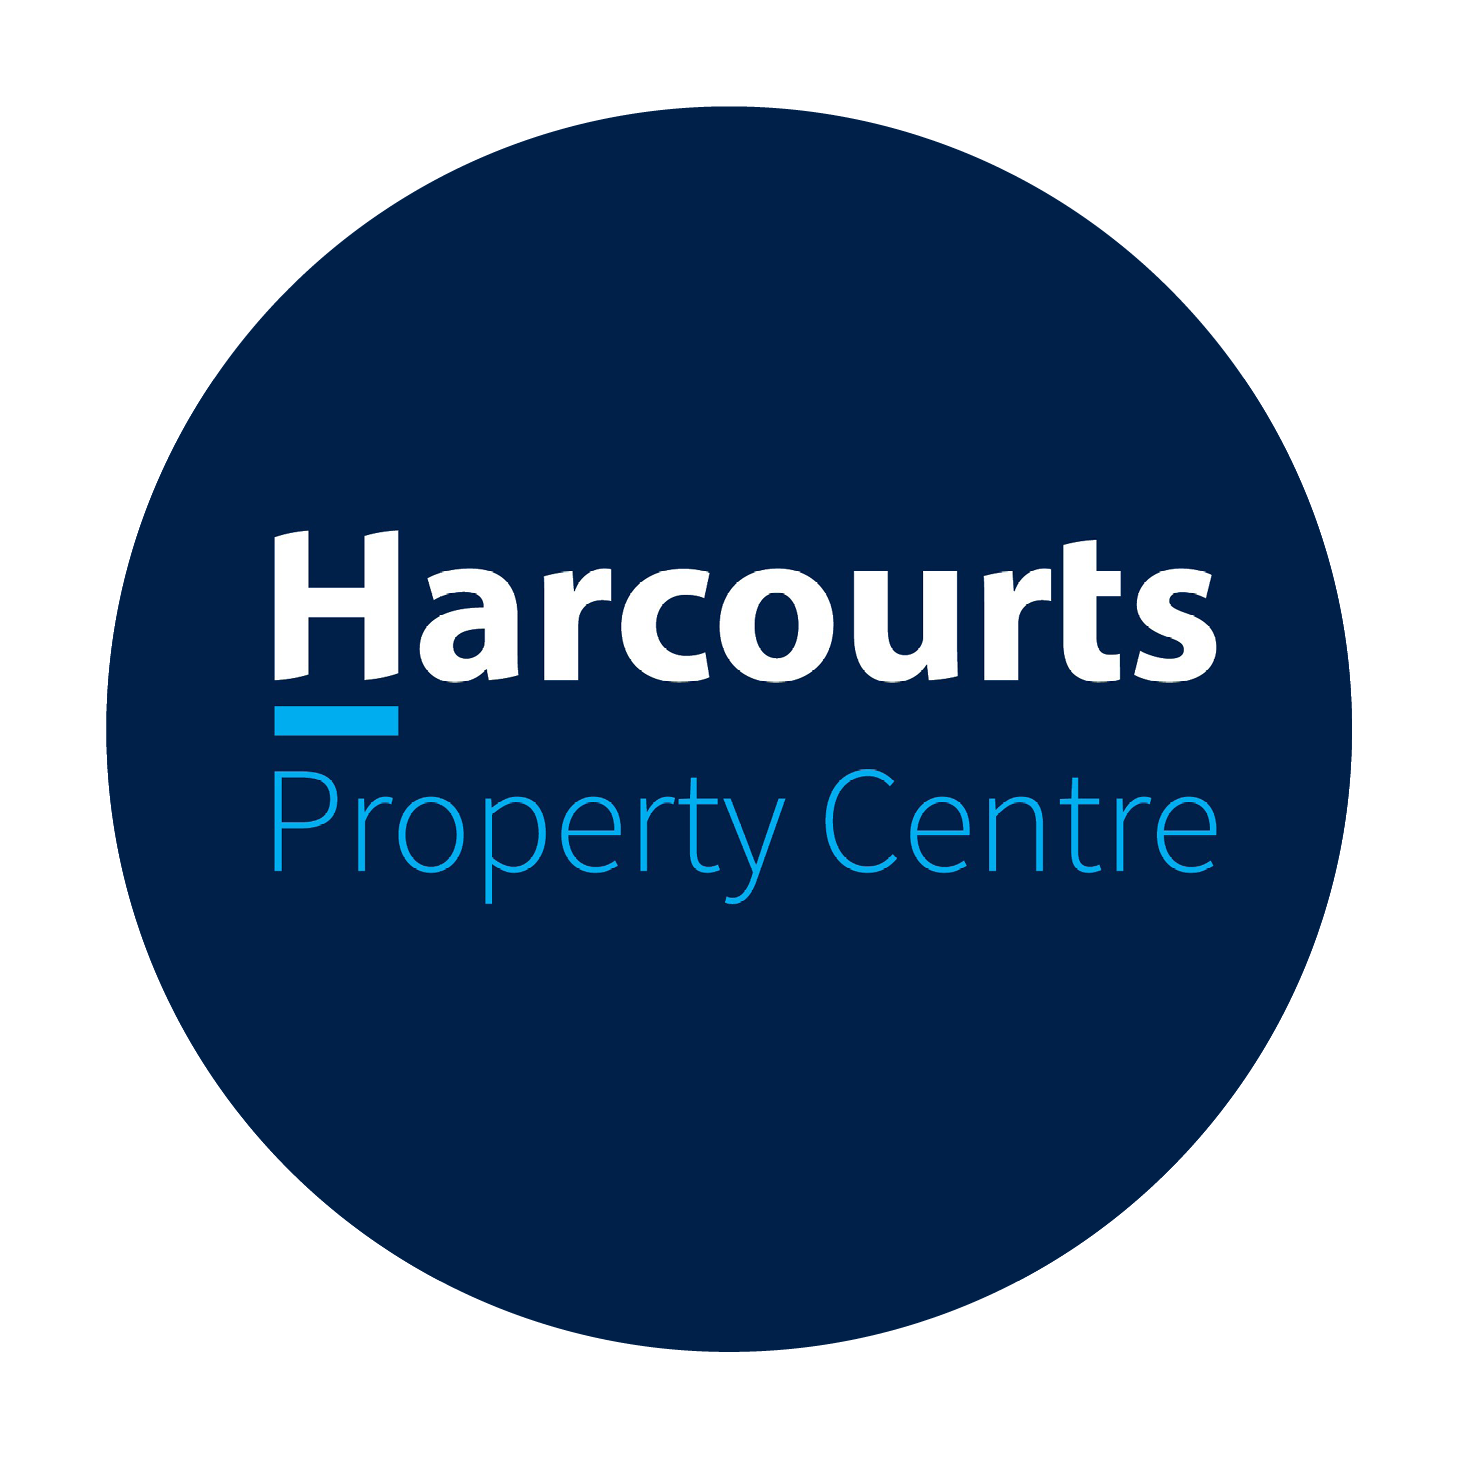 Madd_Contacts_Page_Harcourts